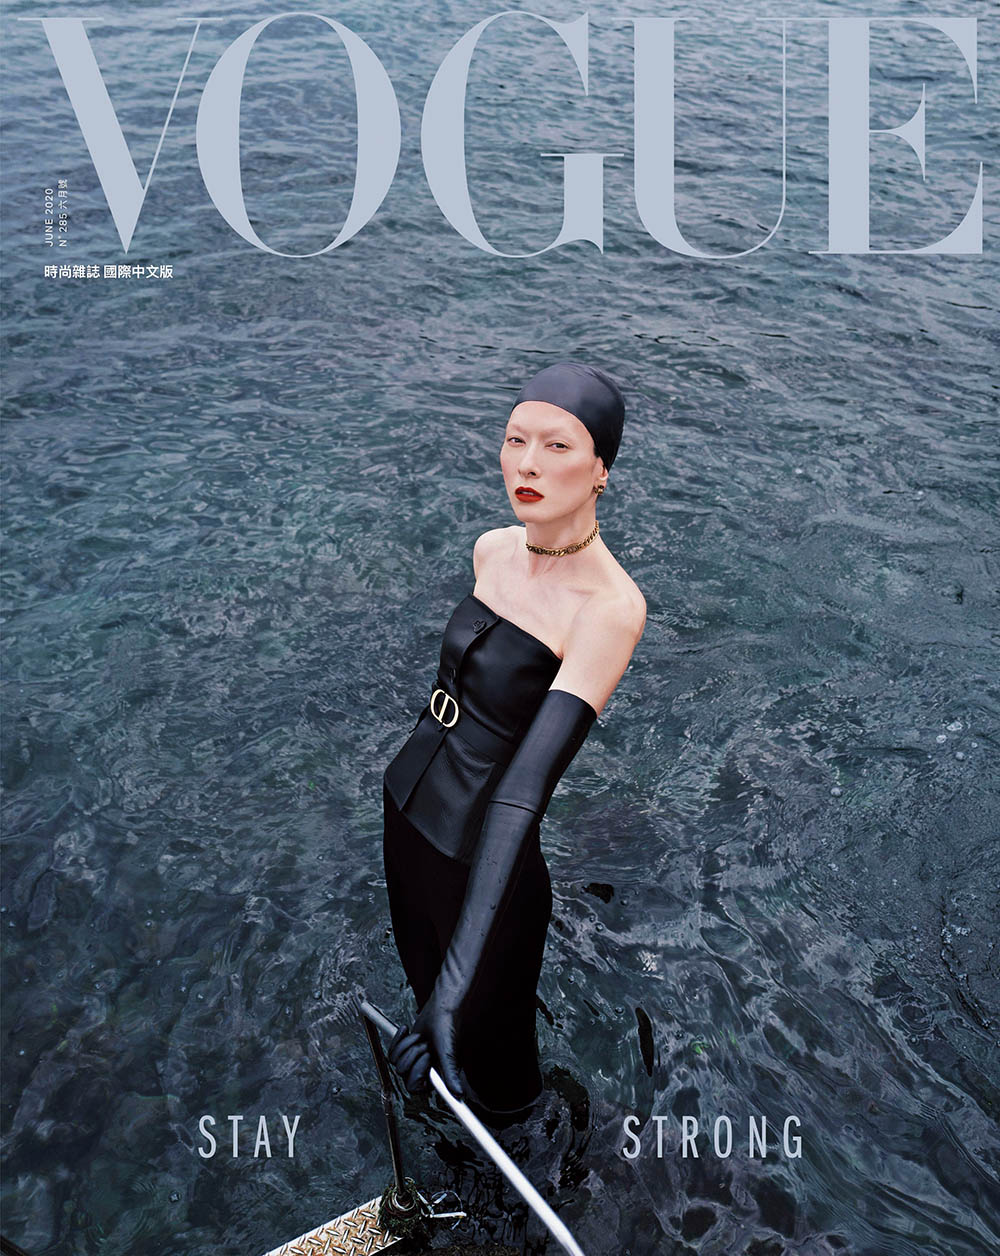 Liu Hsin Yu covers Vogue Taiwan June 2020 by Zhong Lin